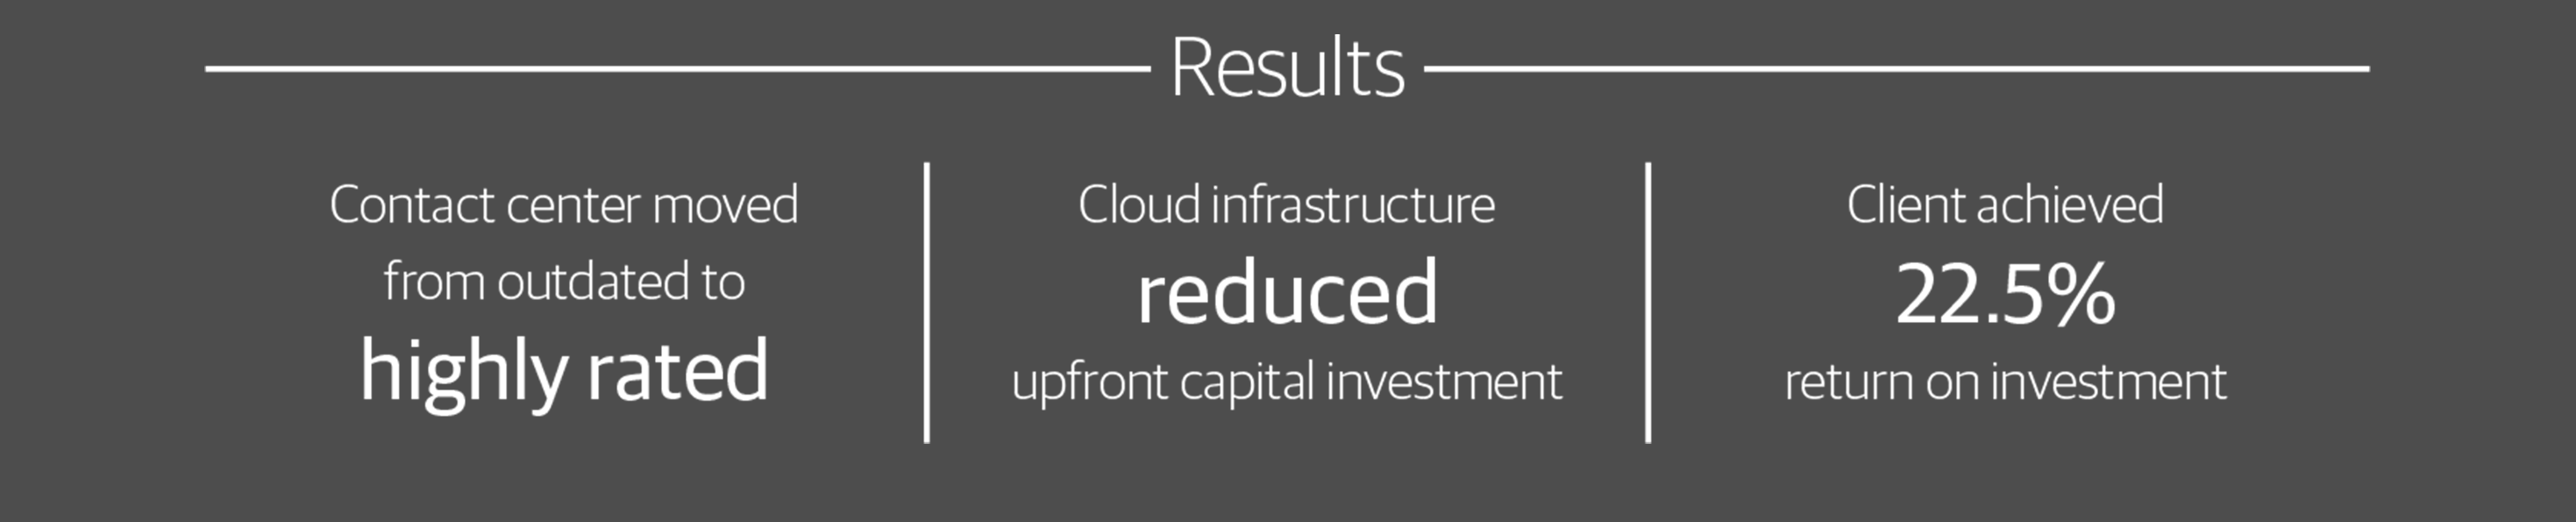 We helped implement a solution that helped reduce our clients costs